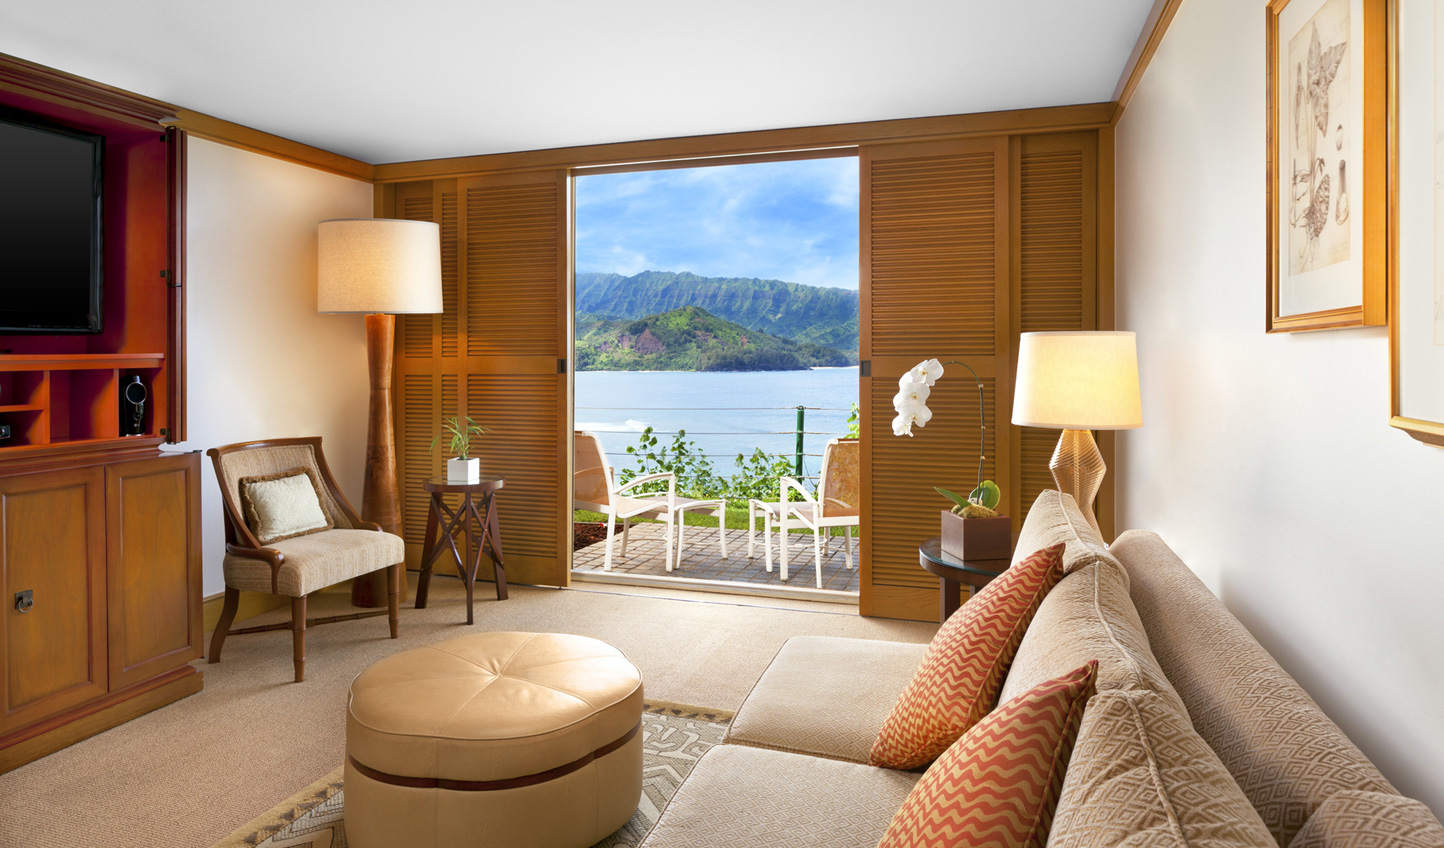 Enjoy stunning ocean views from the comfort of your room